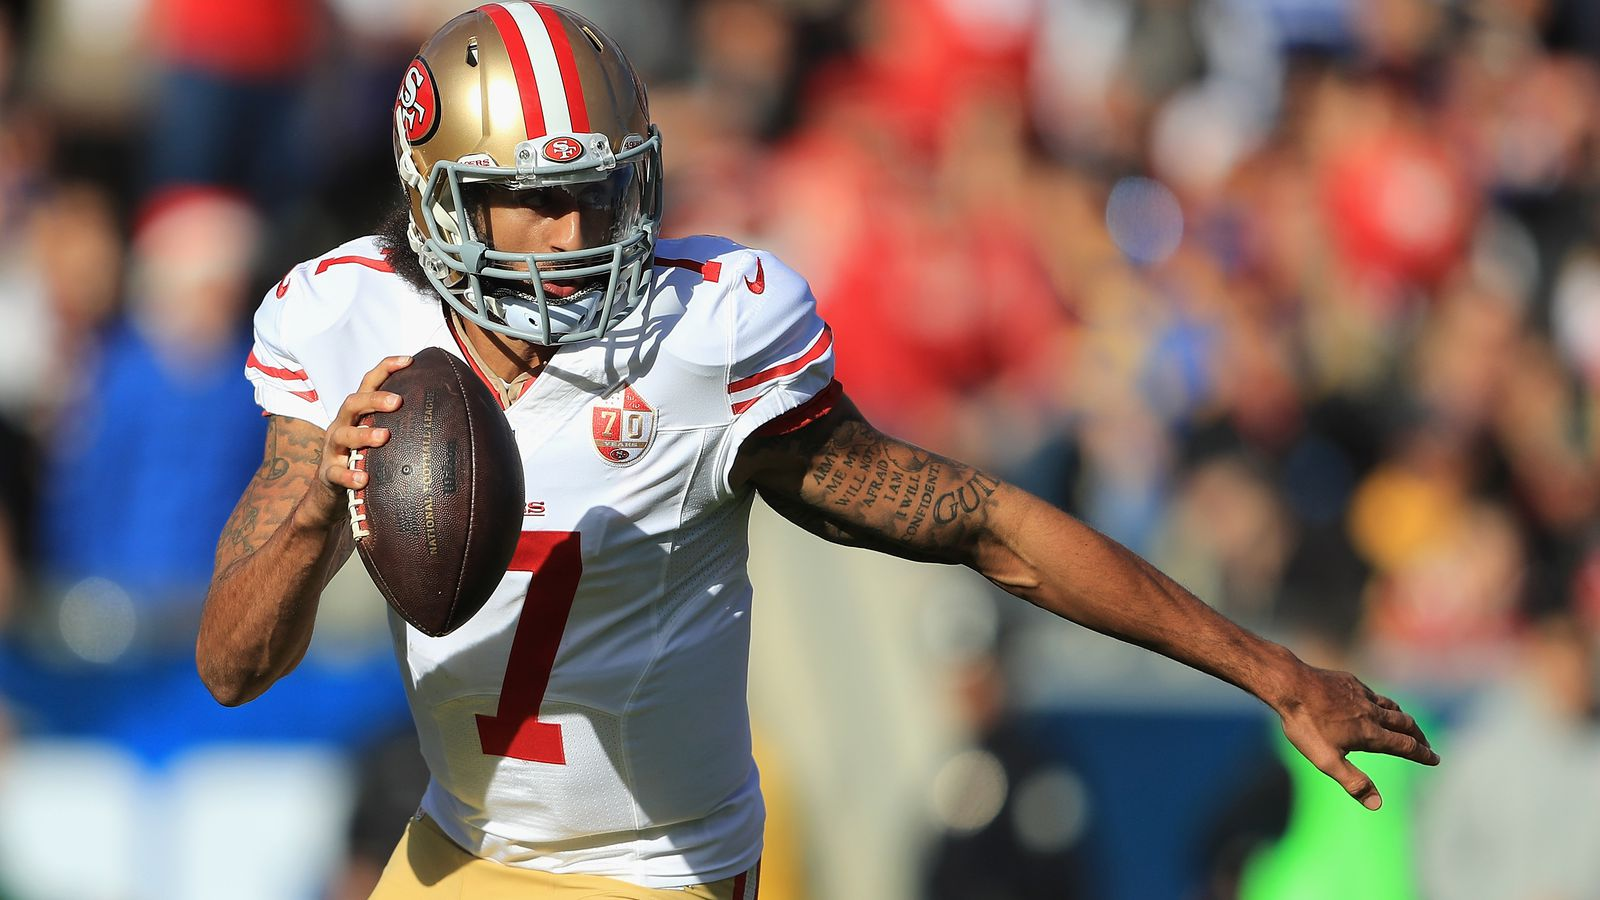 Kaepernick's attorney: '1 of 3 [NFL] teams picks him up'